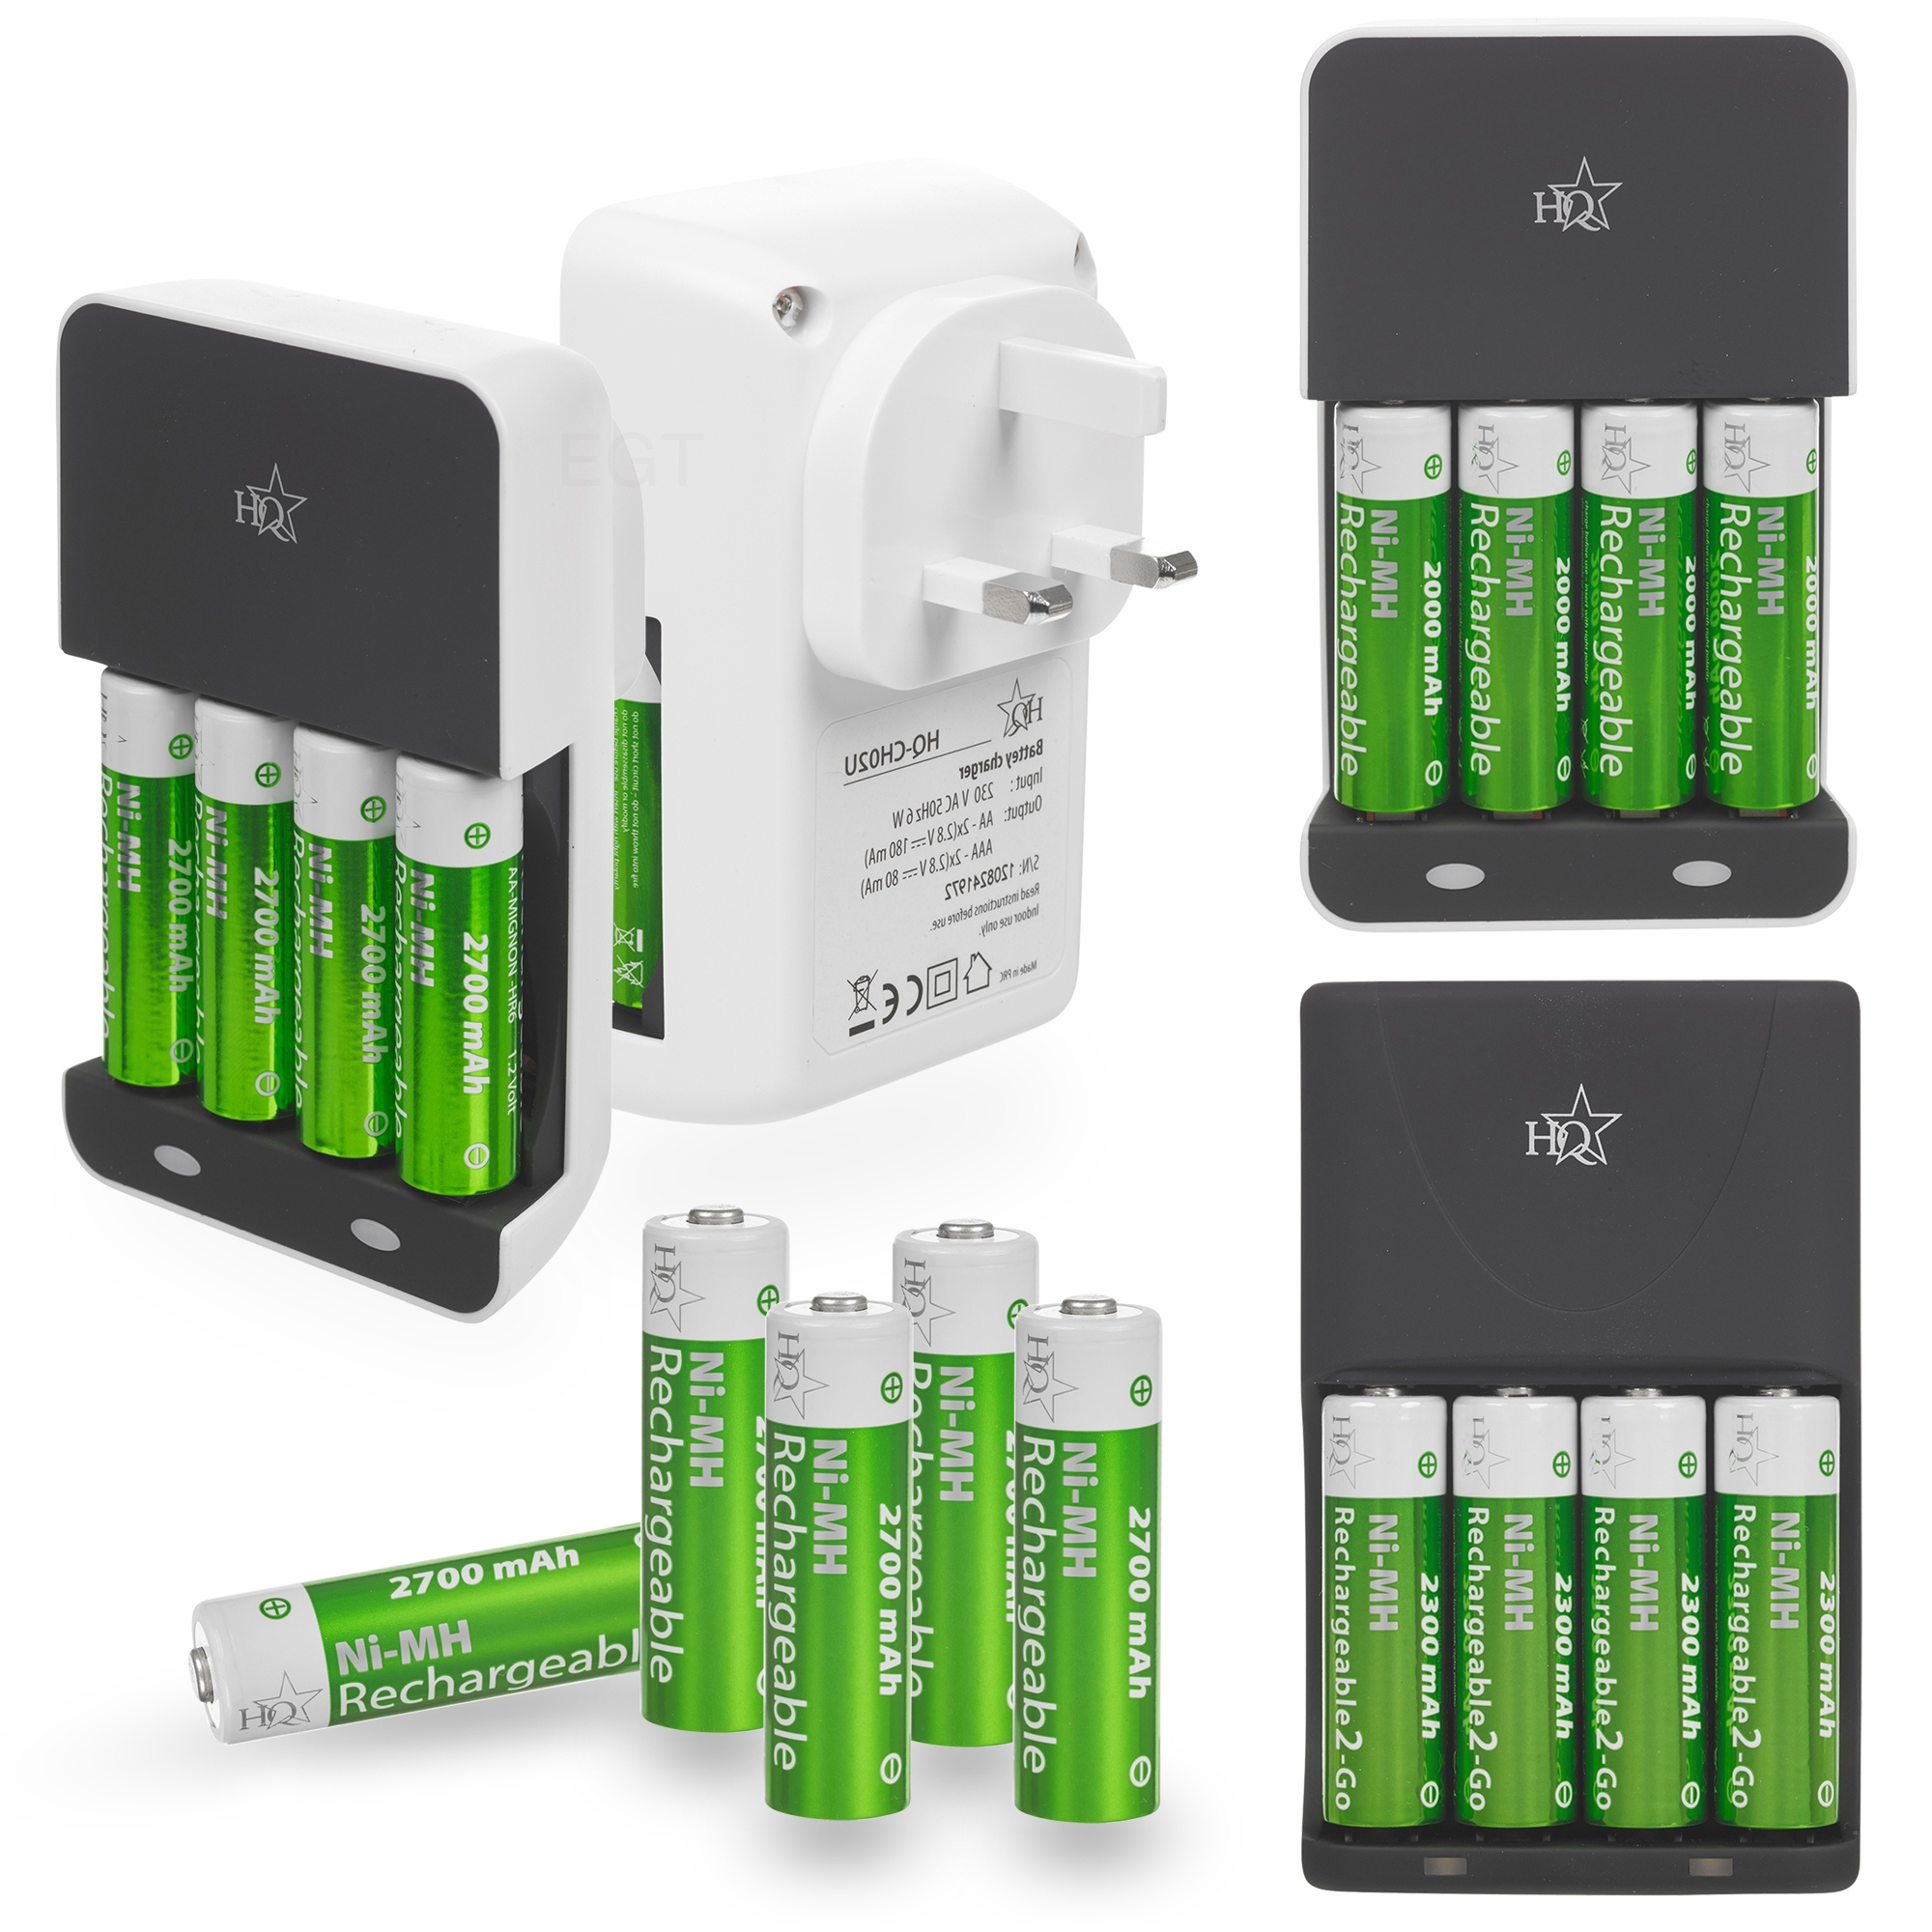 hq aa aaa battery charger 4 x high power rechargeable batteries 2000 2700mah ebay. Black Bedroom Furniture Sets. Home Design Ideas